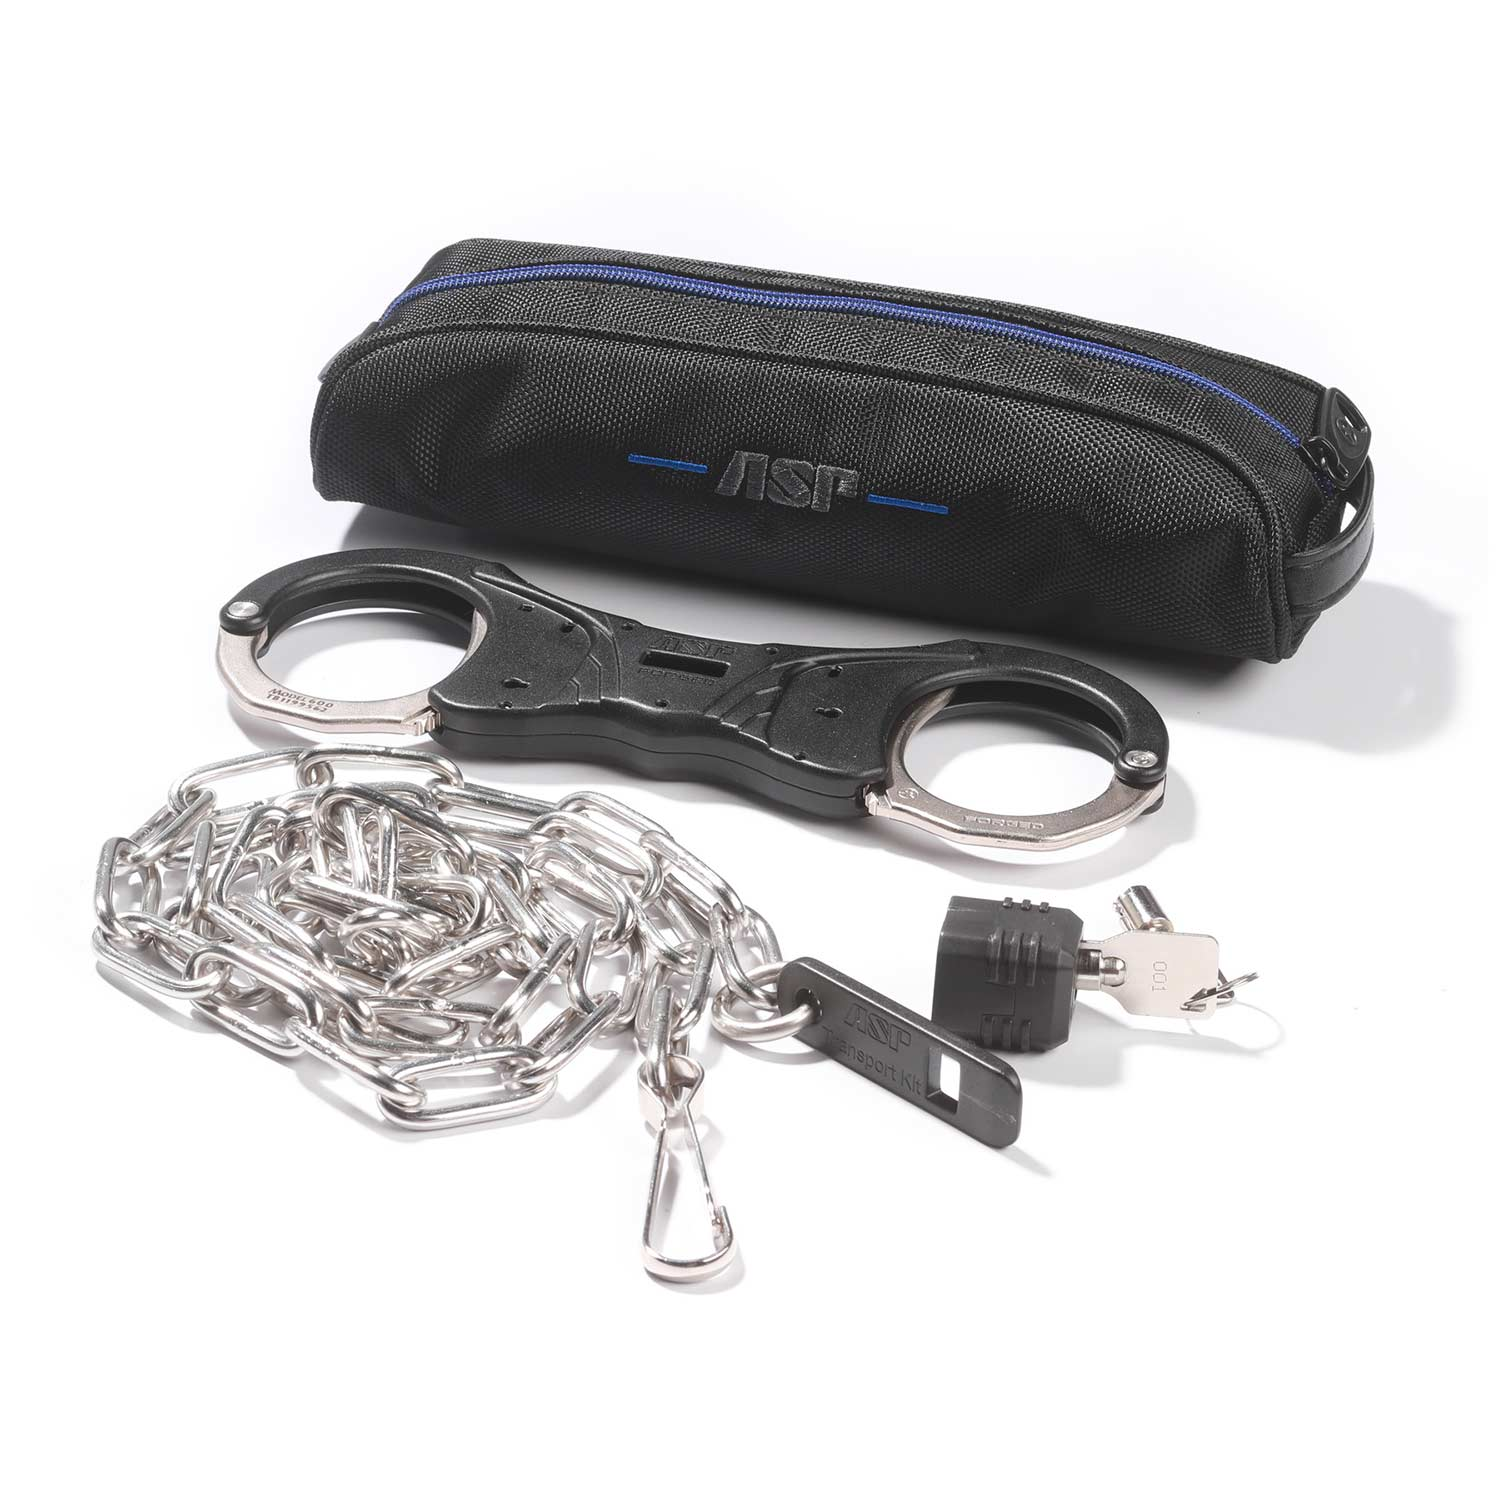 ASP Transport Kit with Rigid Ultra Cuffs and Chain